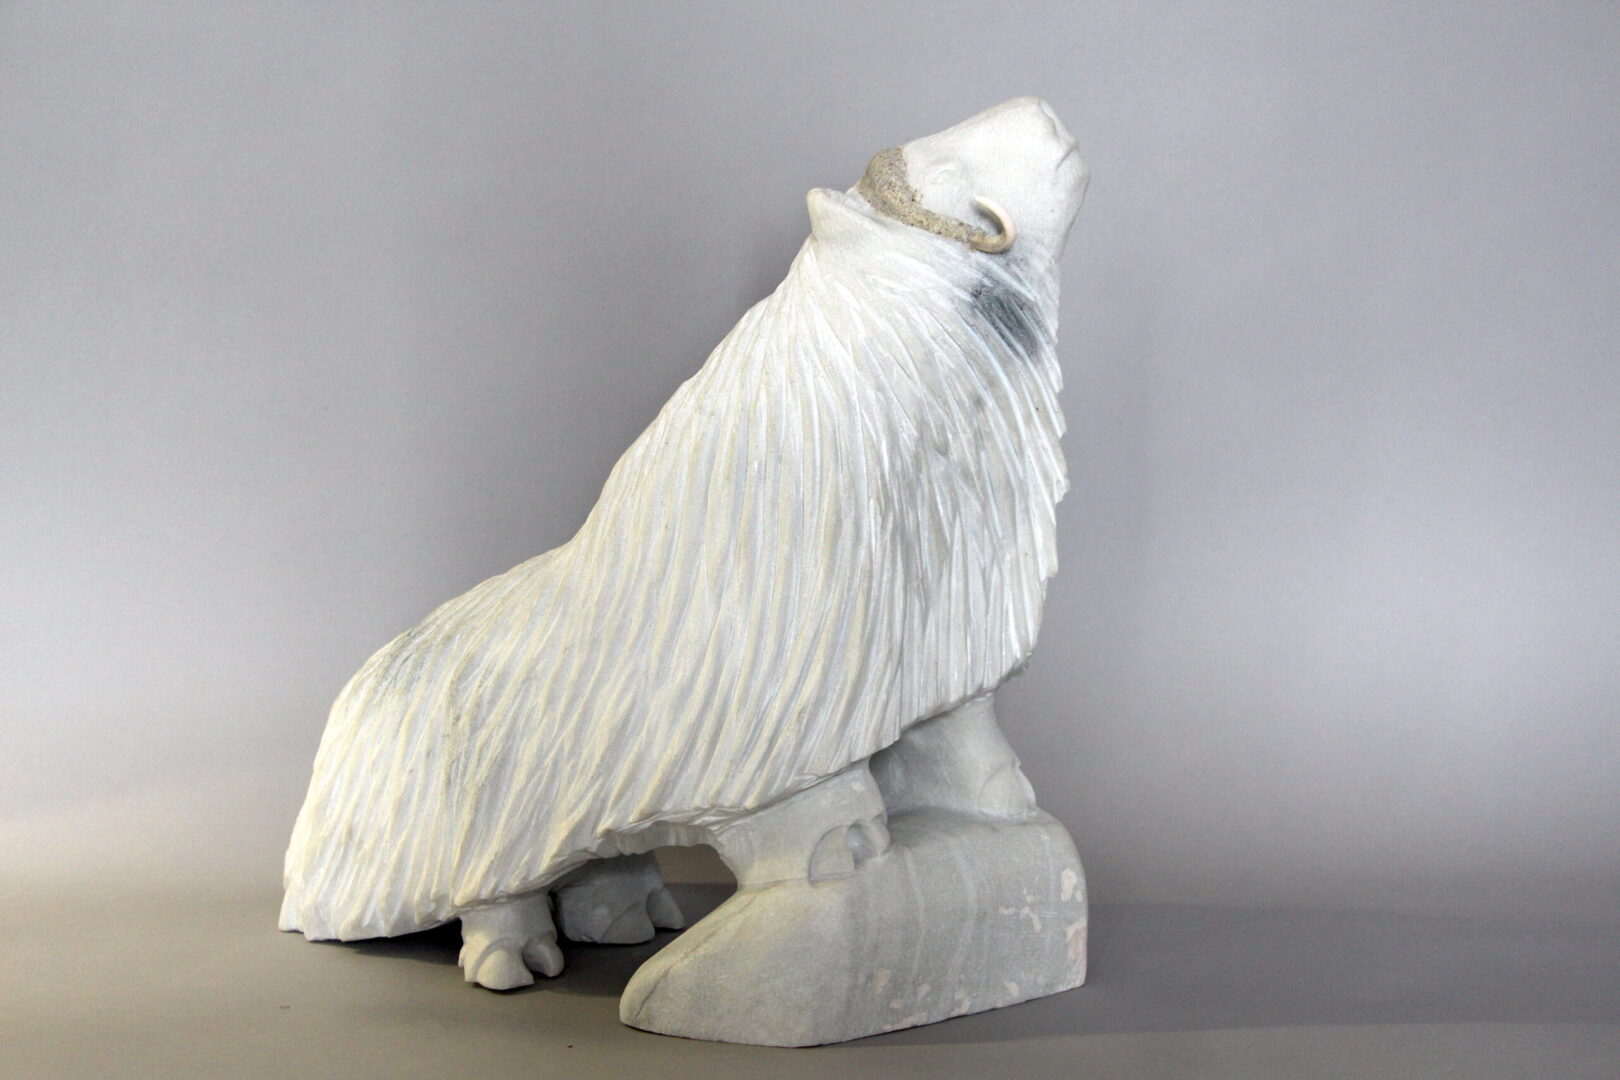 muskox Inuit Art Sculpture in marble